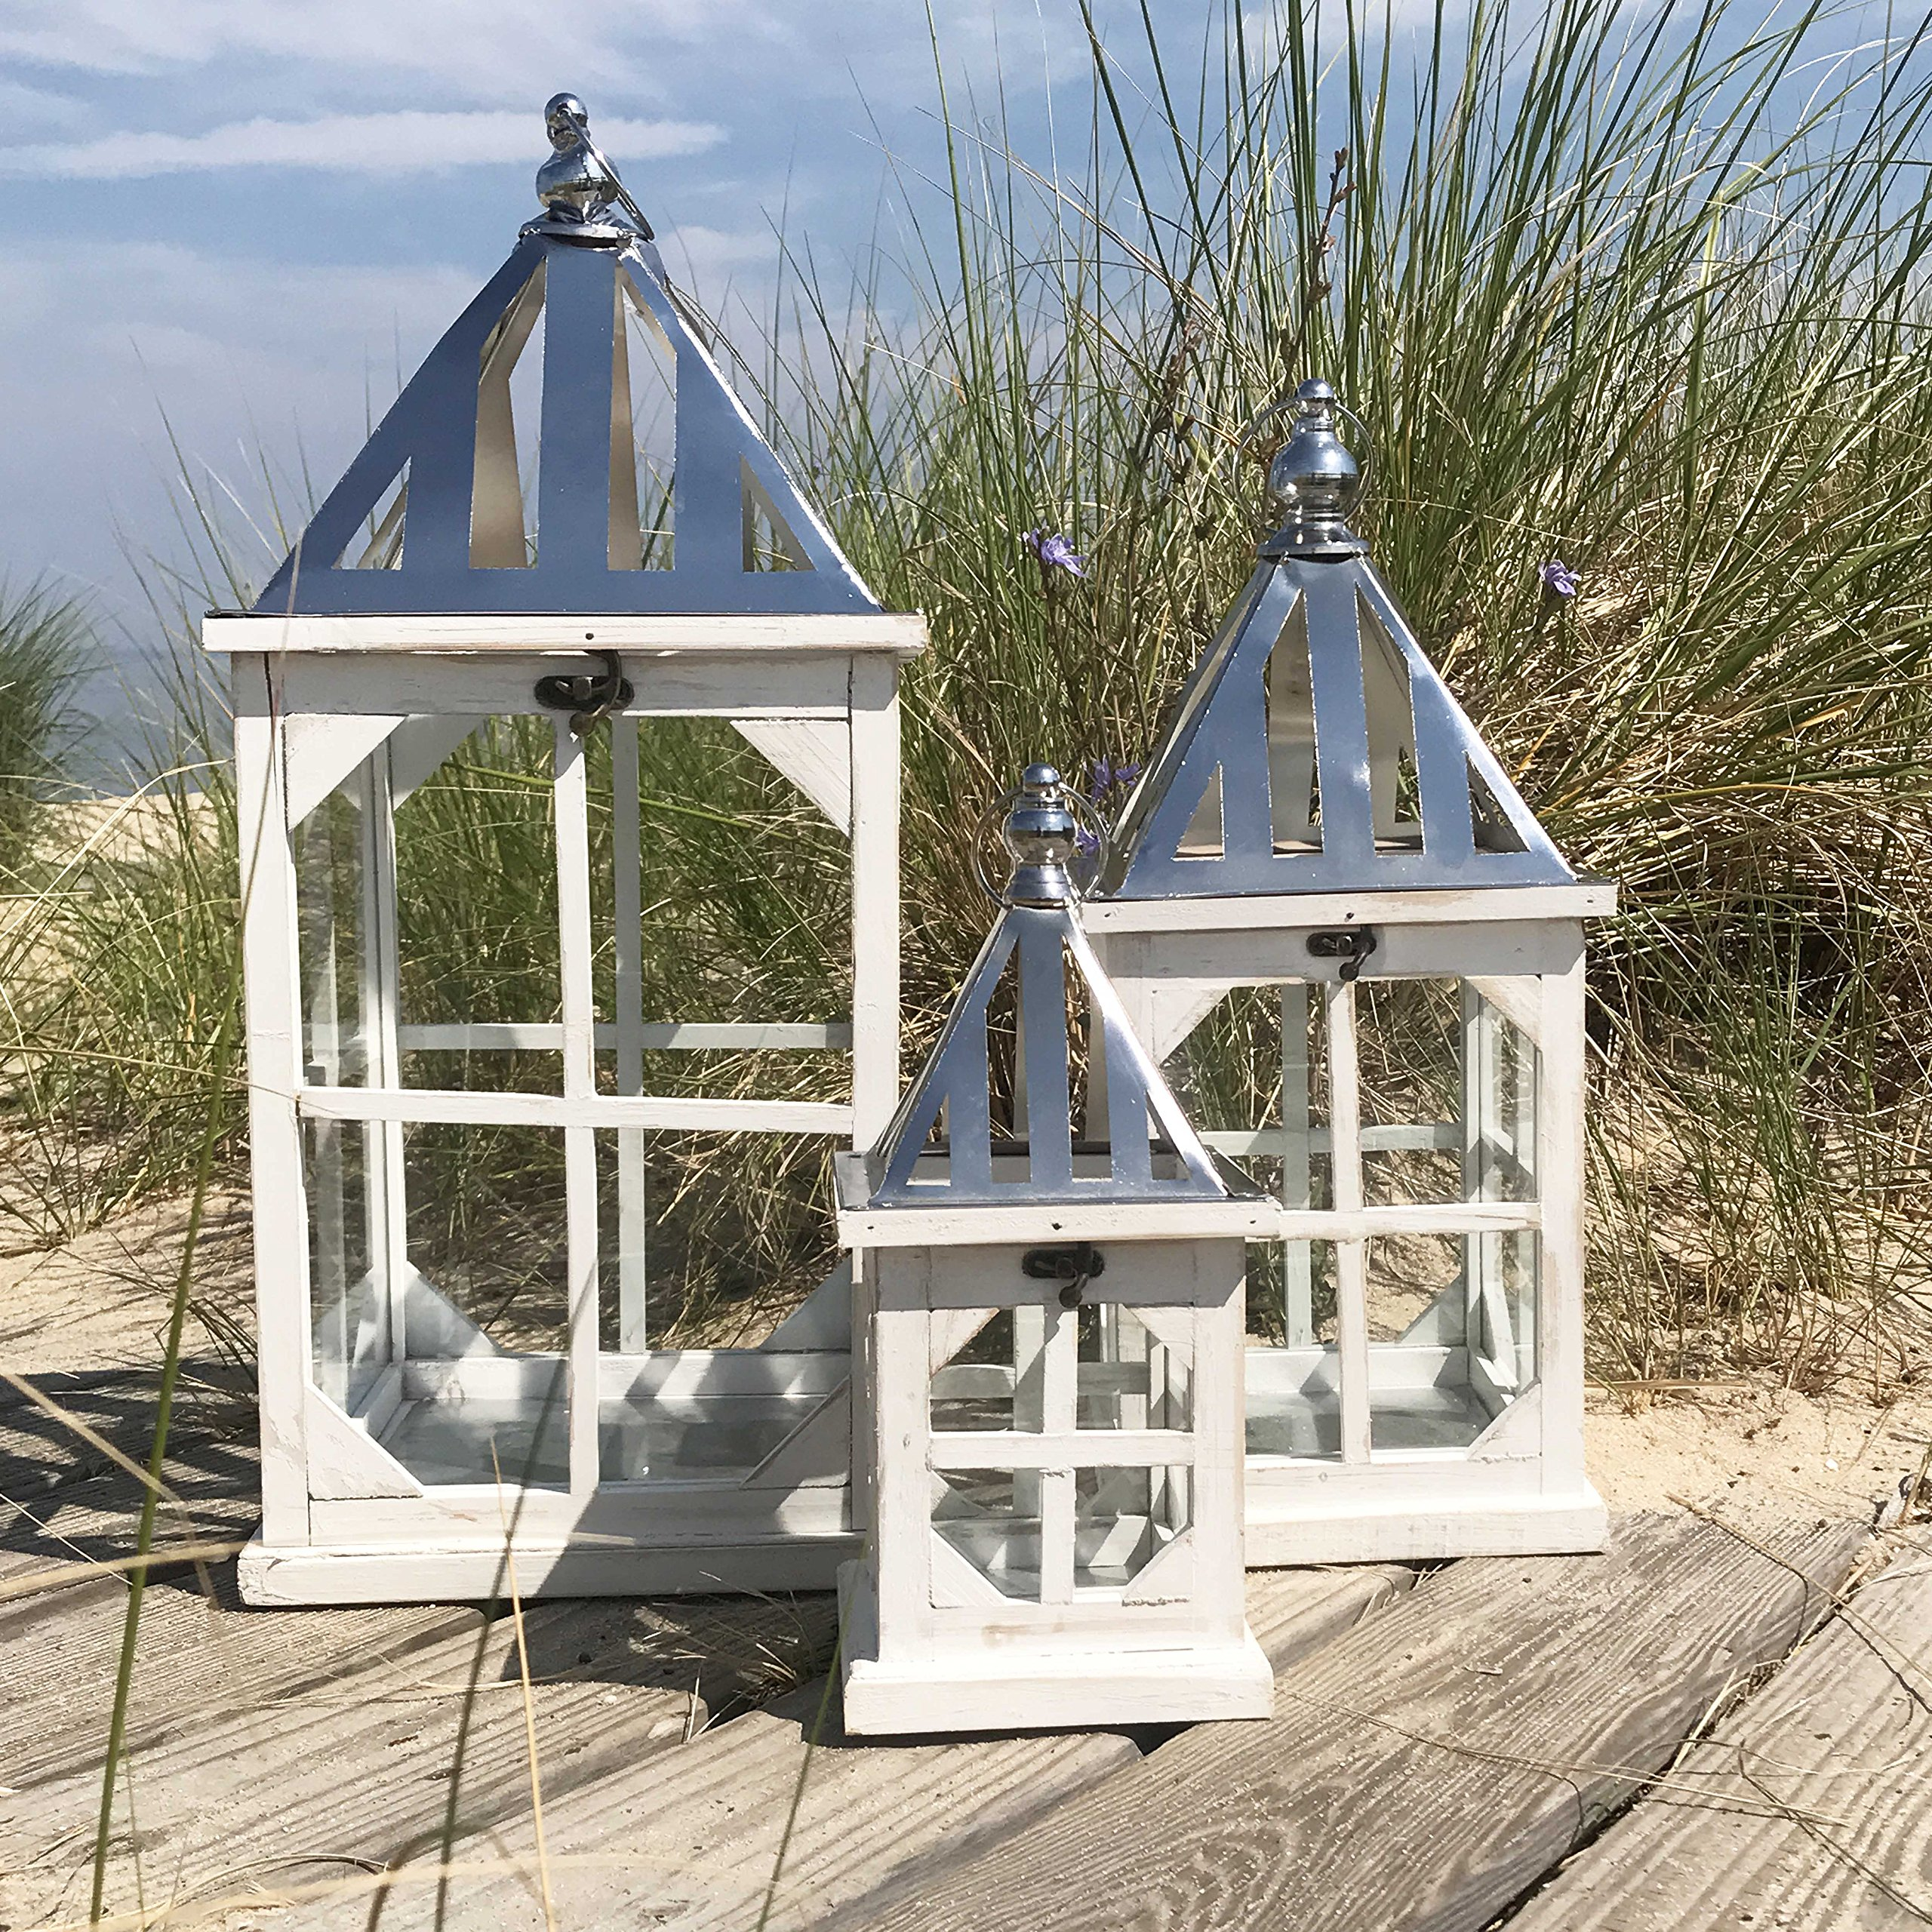 The Crosby Street Cross Post Candle Lanterns, Set of 3, Silver Metal Slated Roof, Top Opening, Swing Latch, Hanging Loop, Solid Wood Construction, Glass, 24, 19, 13 Inches Tall, By Whole House Worlds by Whole House Worlds